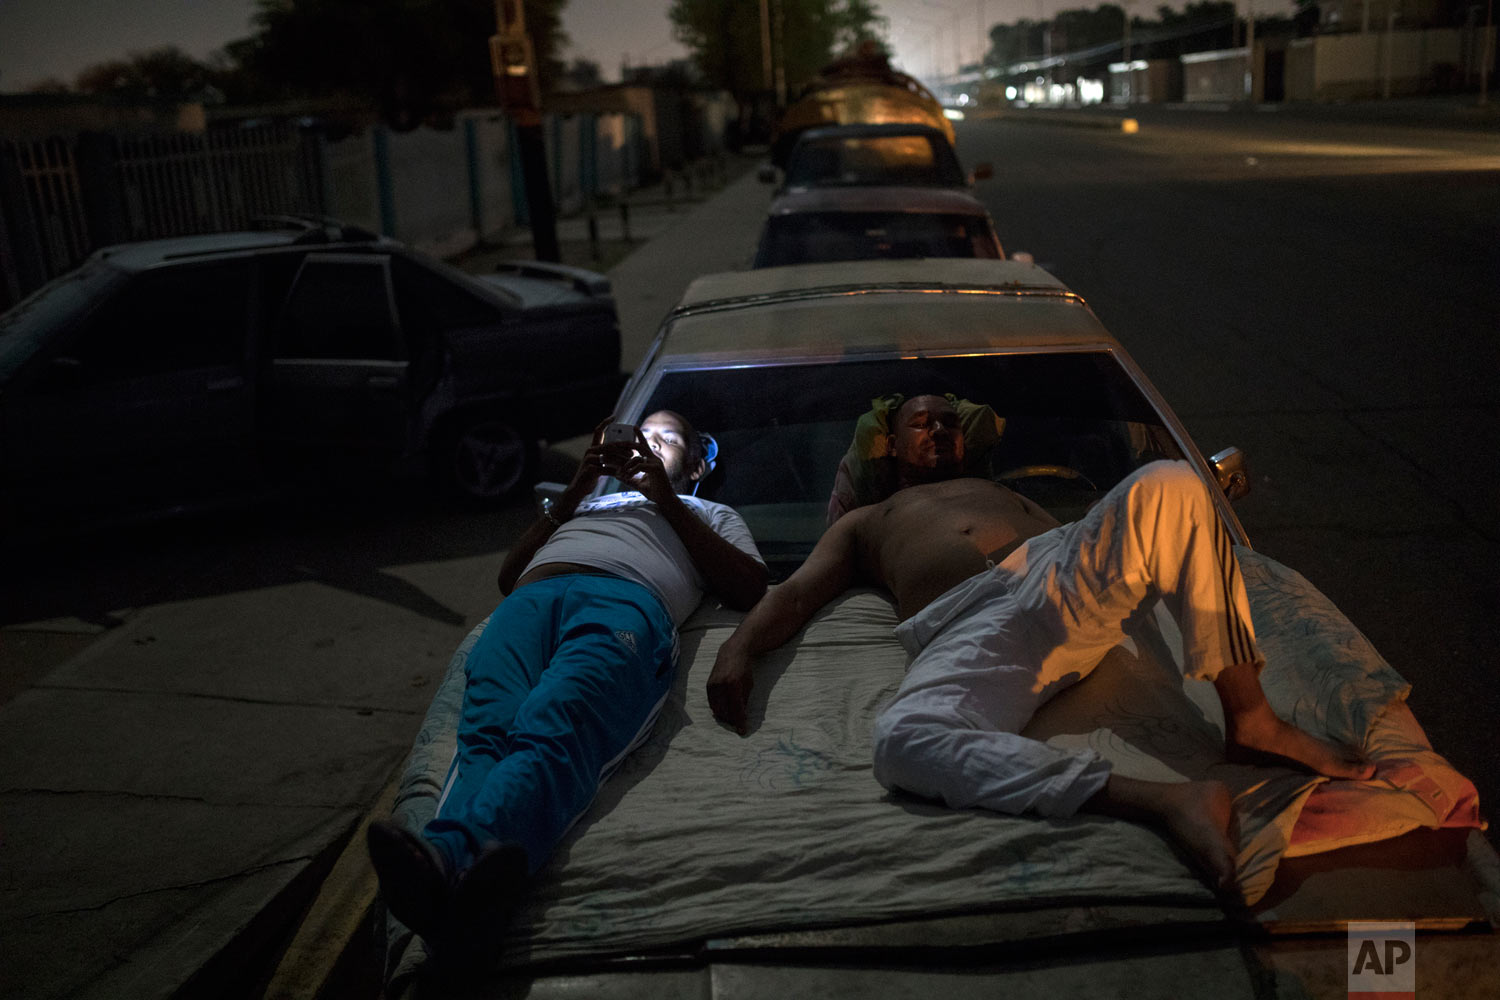 Andres Quintero, left, and Fermin Perez rest on top of Perez's car as they wait in line for over 20 hours to fill their tanks with gas in Cabimas, Venezuela, Thursday, May 16, 2019. U.S. sanctions on oil-rich Venezuela resulyrf in mile-long lines for fuel in the South American nation. (AP Photo/Rodrigo Abd)